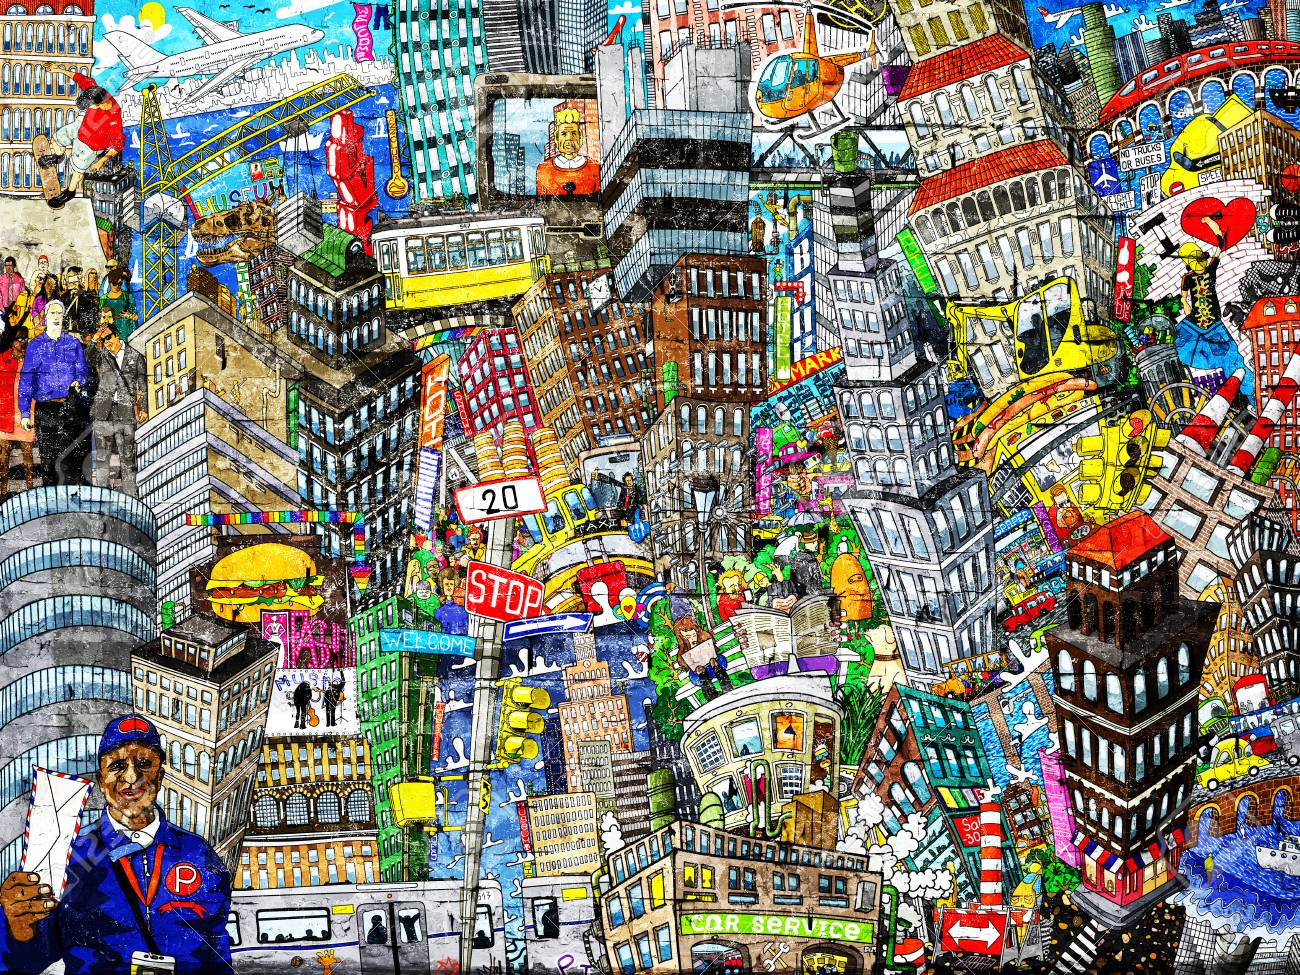 Graffiti, City, an illustration of a large collage, with houses, cars and people - 94420246